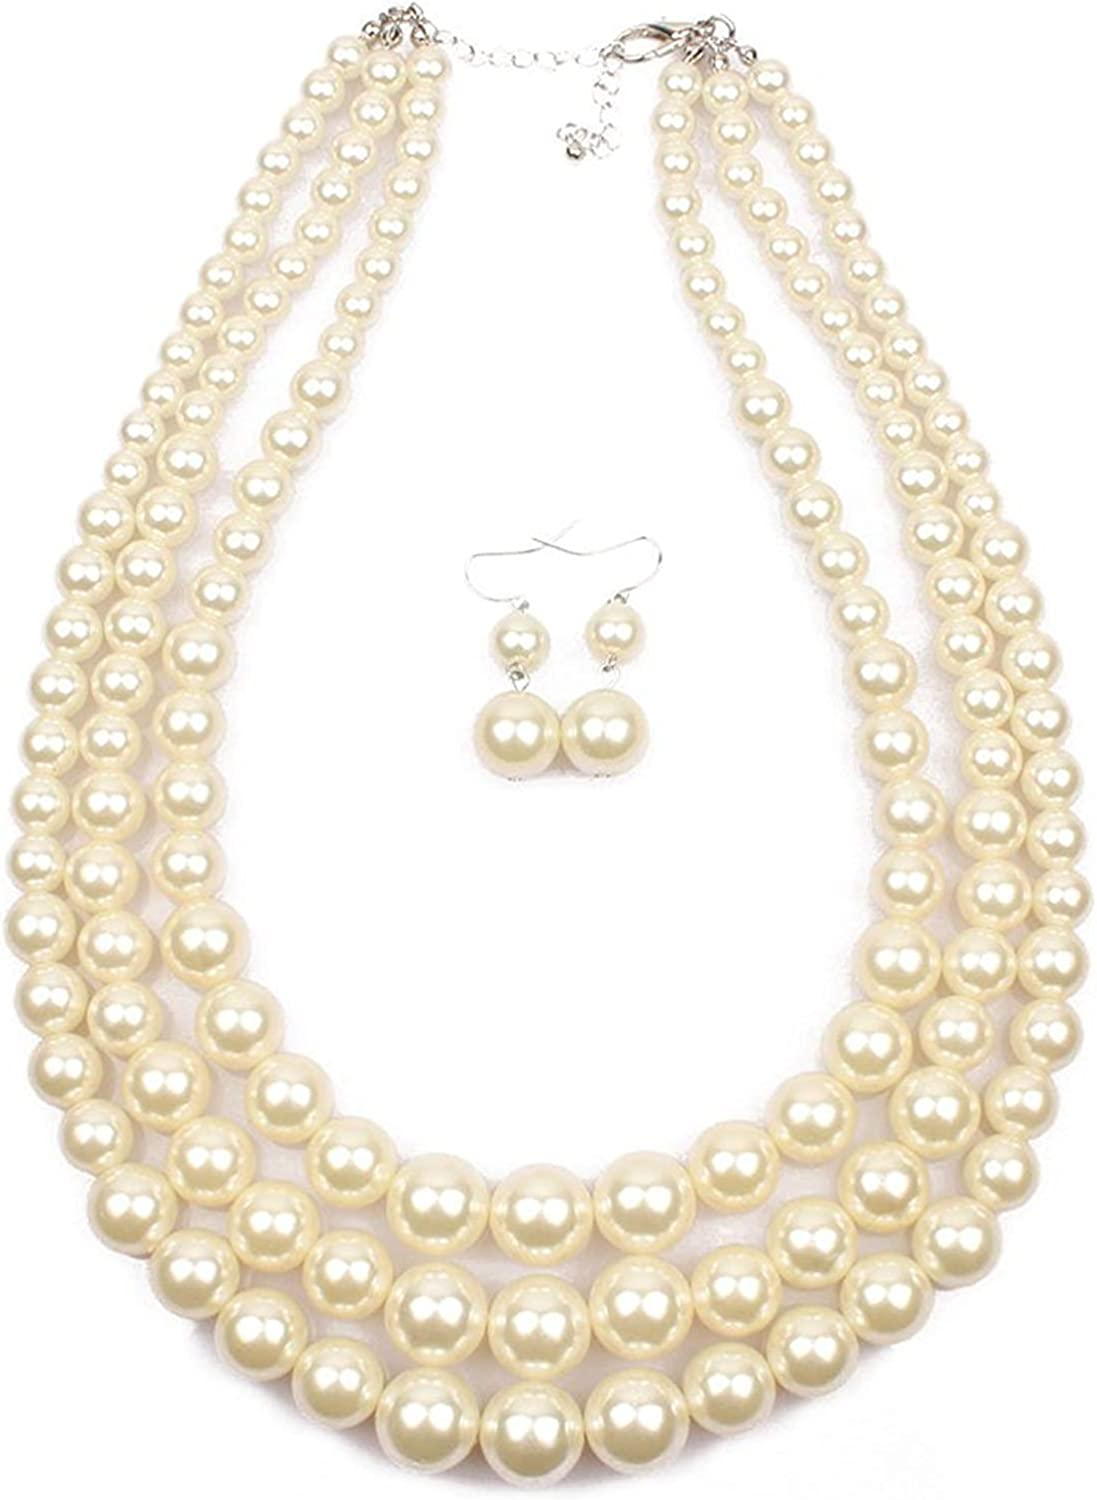 Women's Simulated Pearl Resin Three Multi-Strand Statement Necklace and Earrings Set